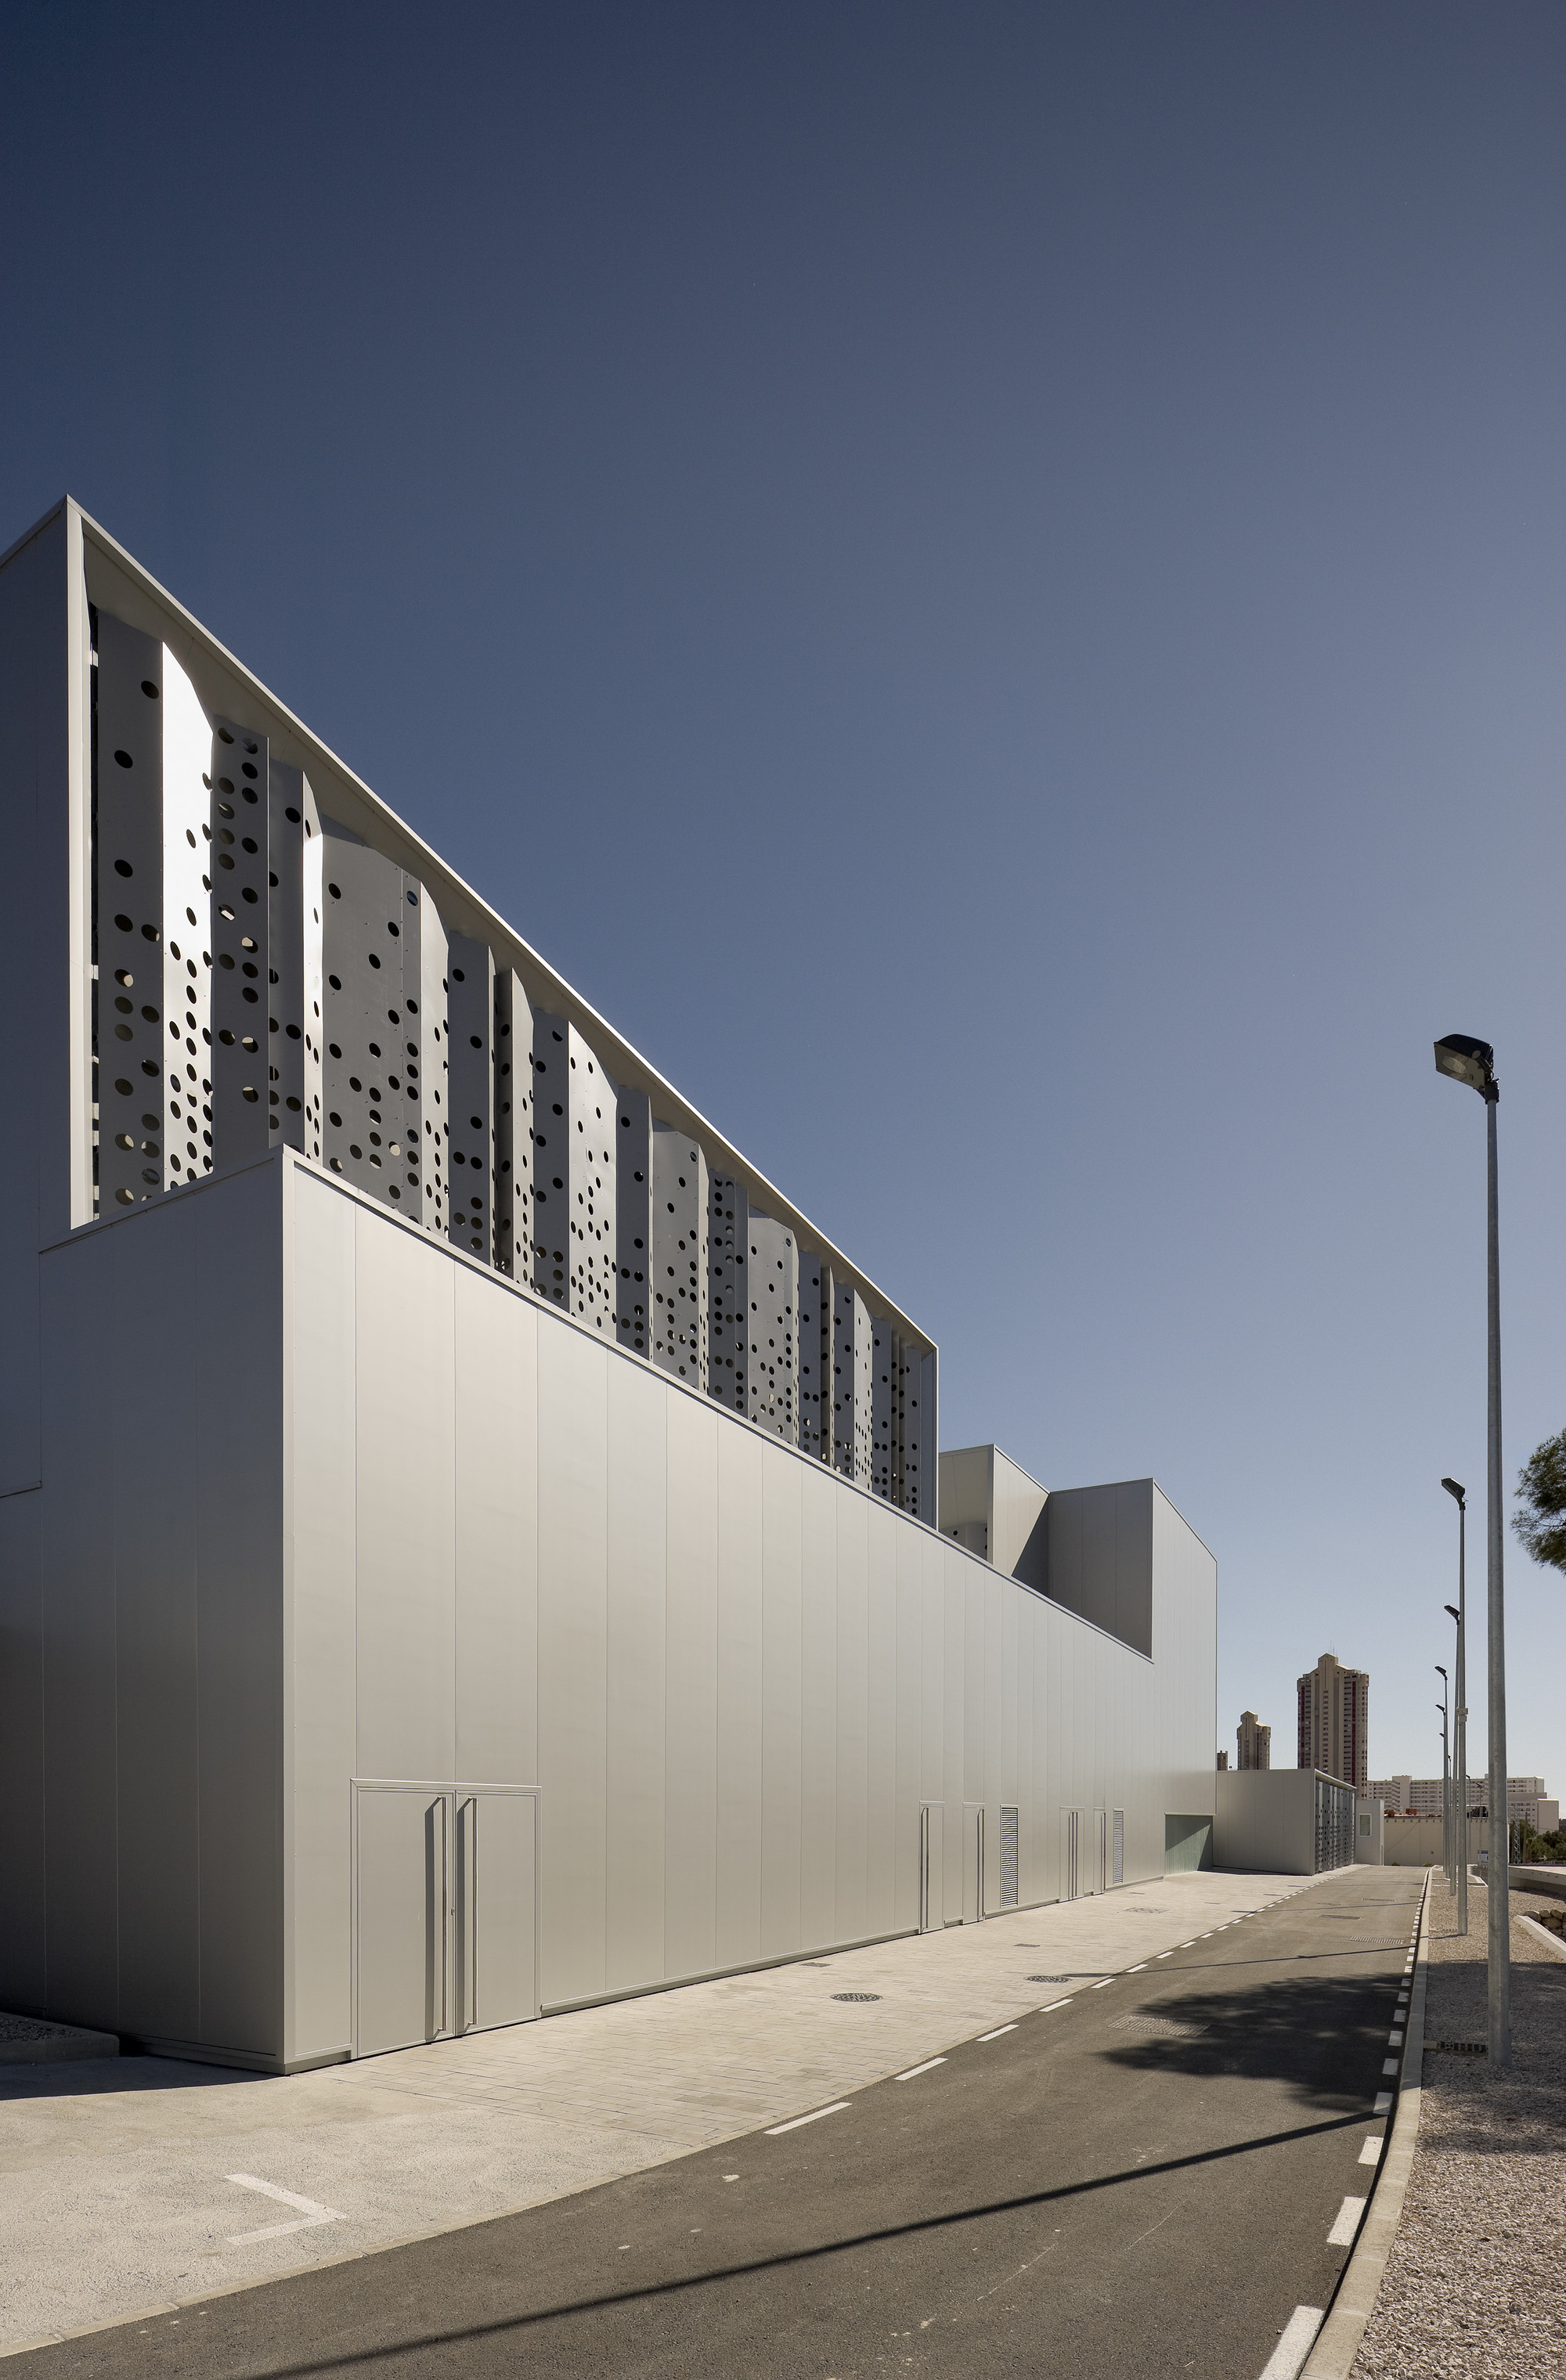 Water Treatment Station of Benidorm / Otxotorena